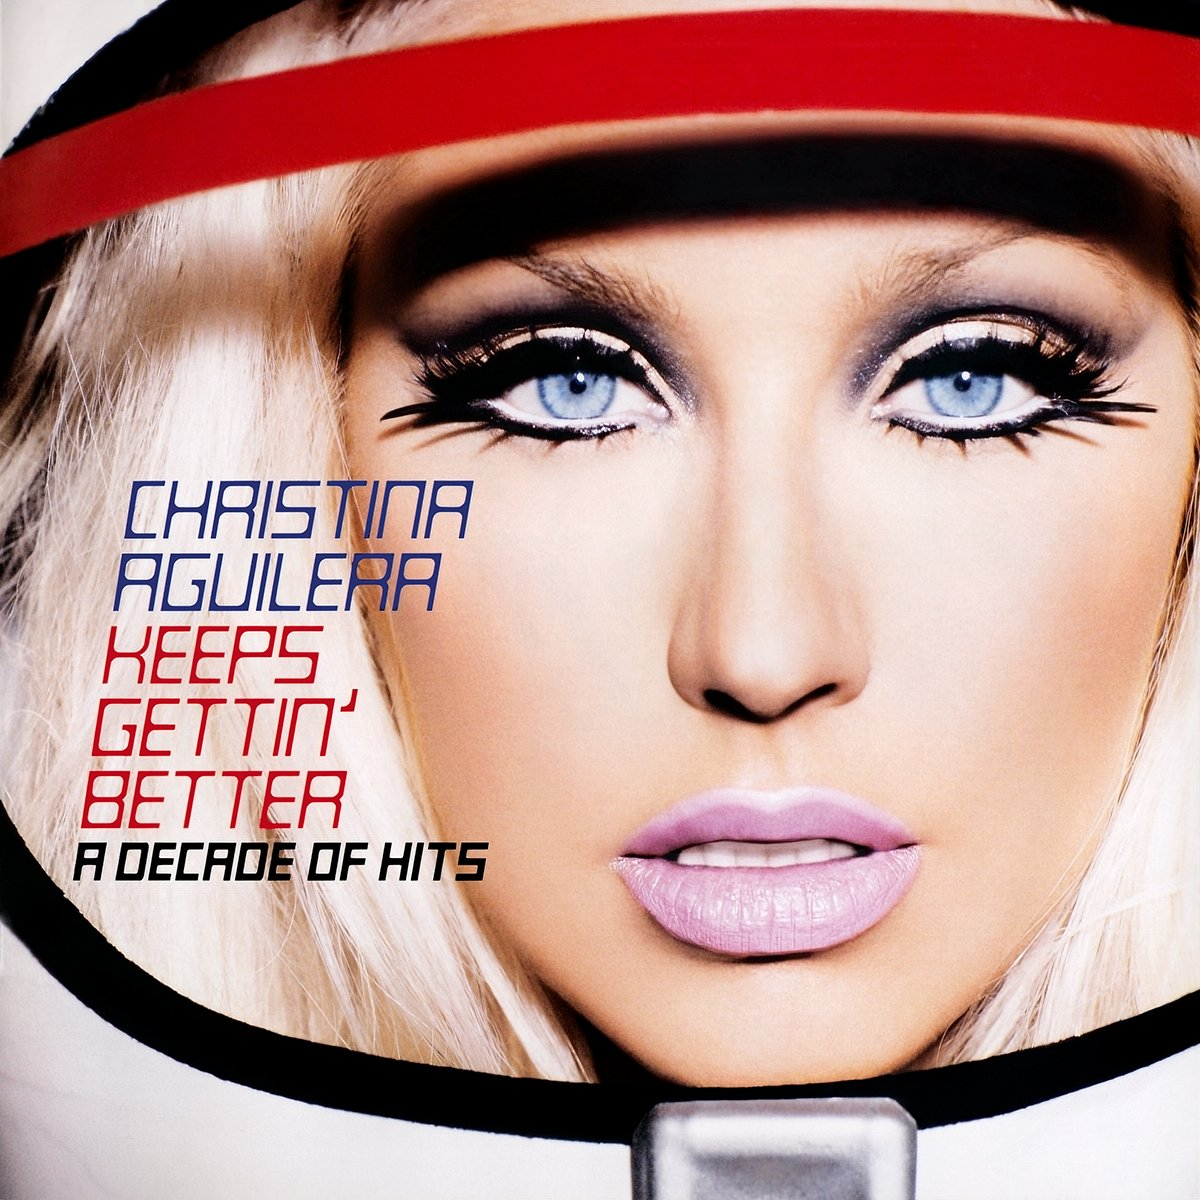 Christina Aguilera, Keeps Gettin' Better: A Decade of Hits